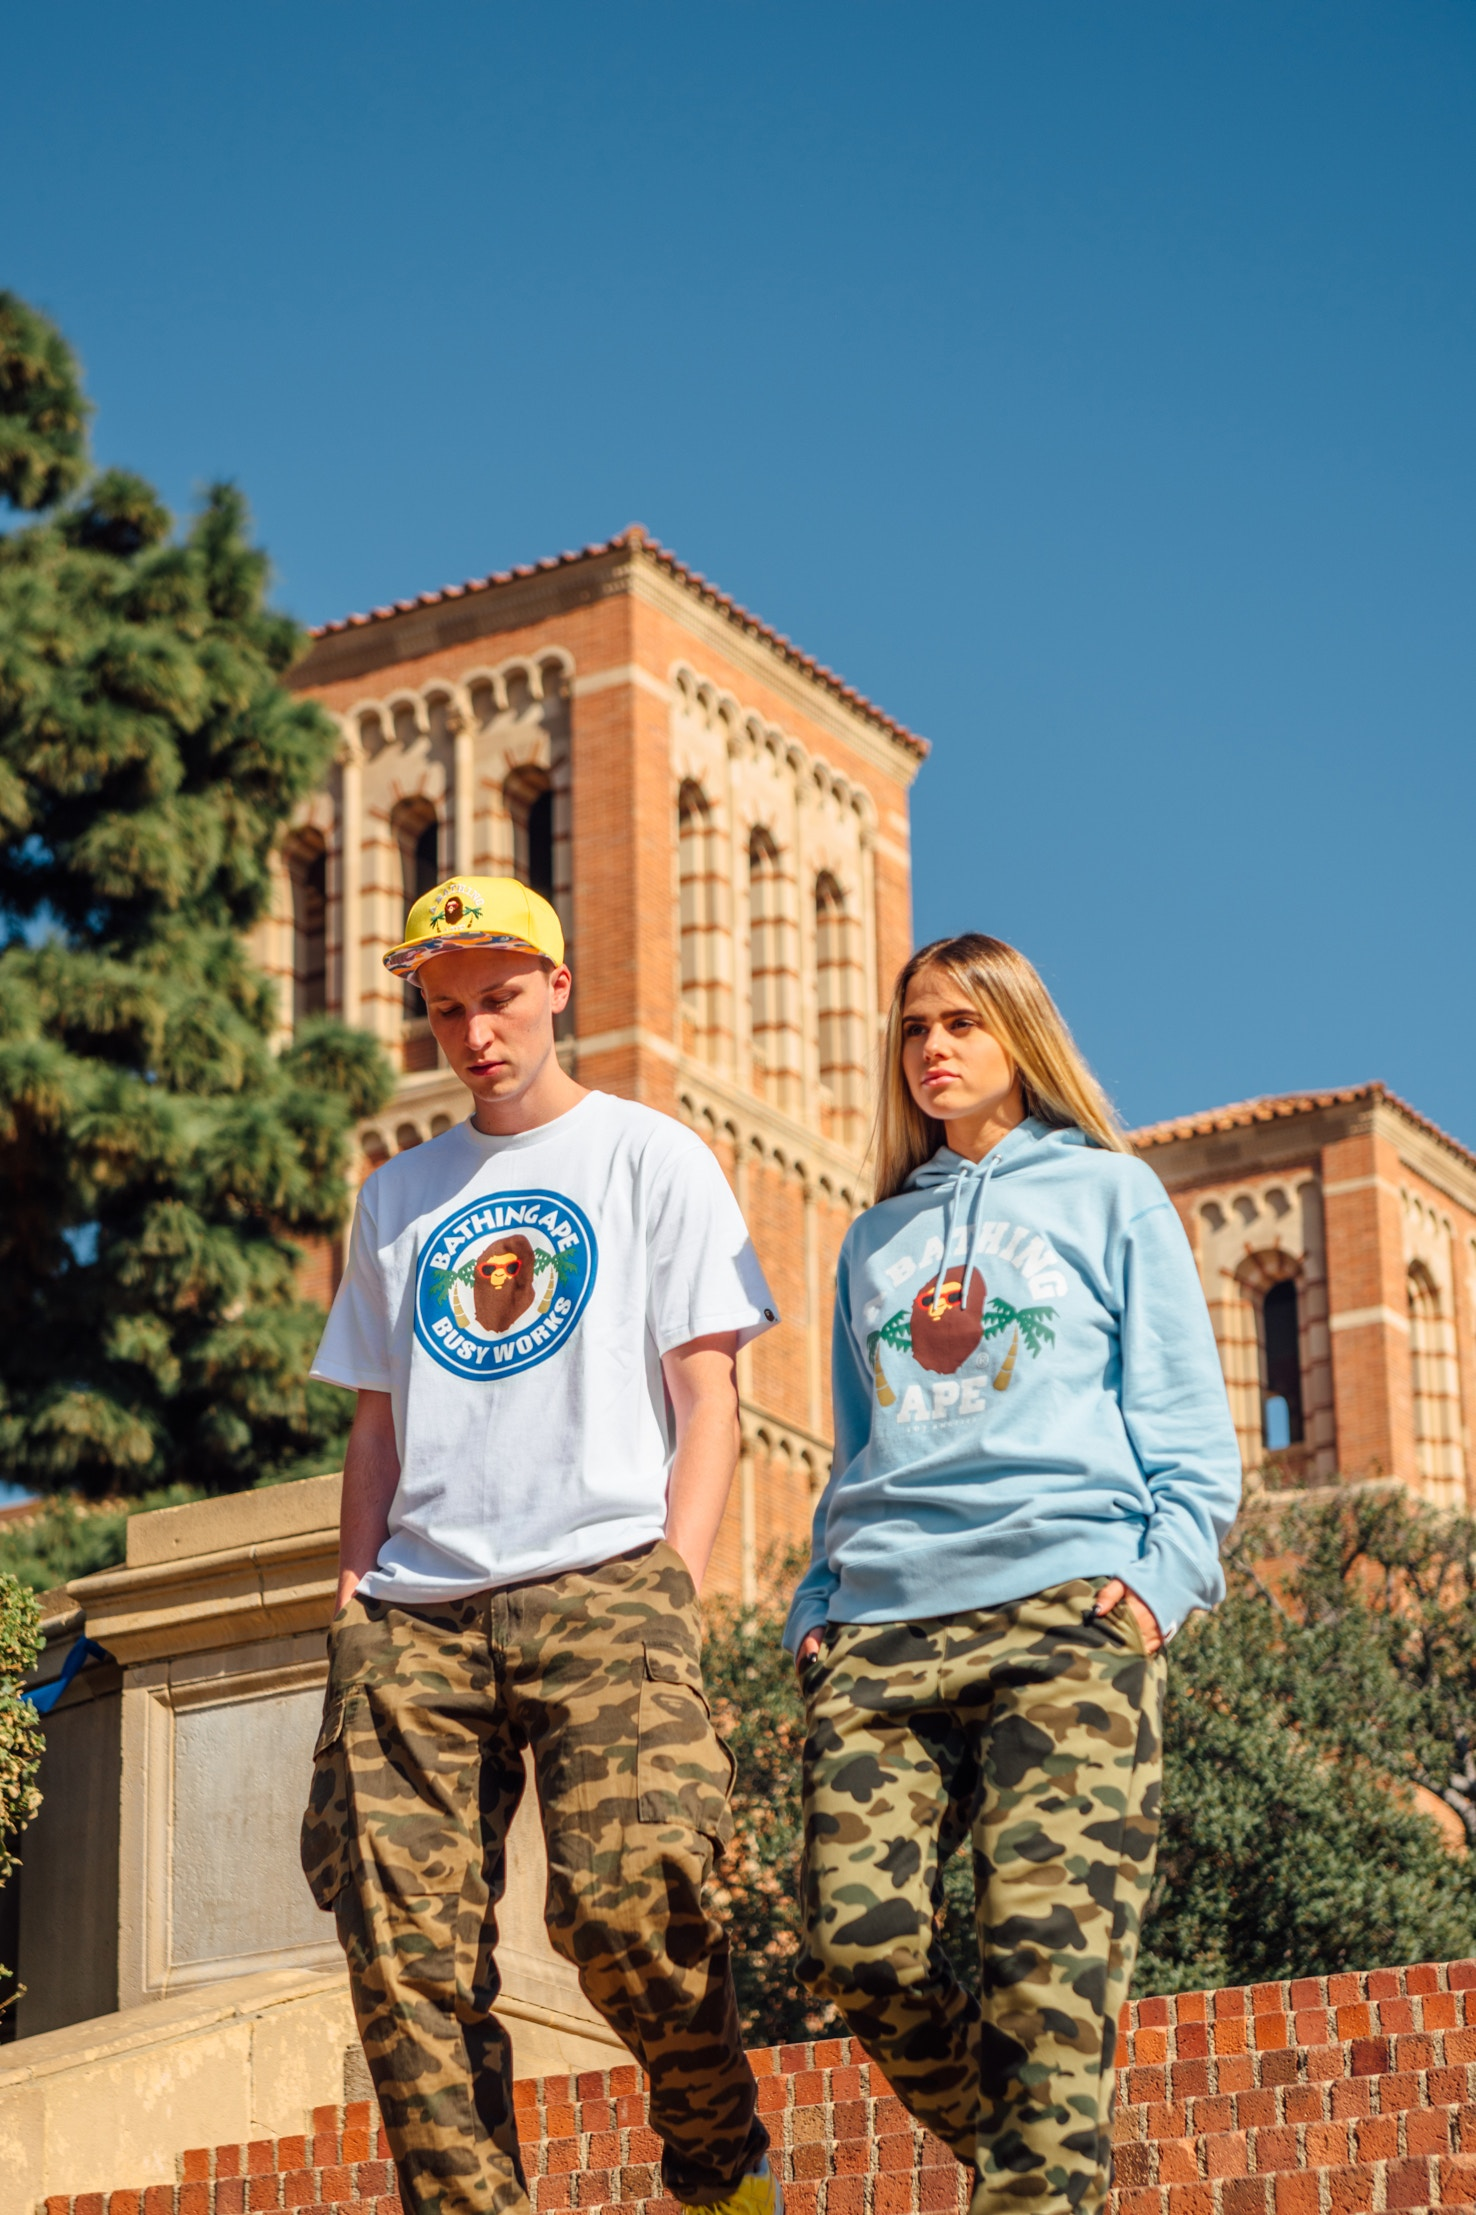 bape-a-bathing-ape-la-capsule-lookbook-07